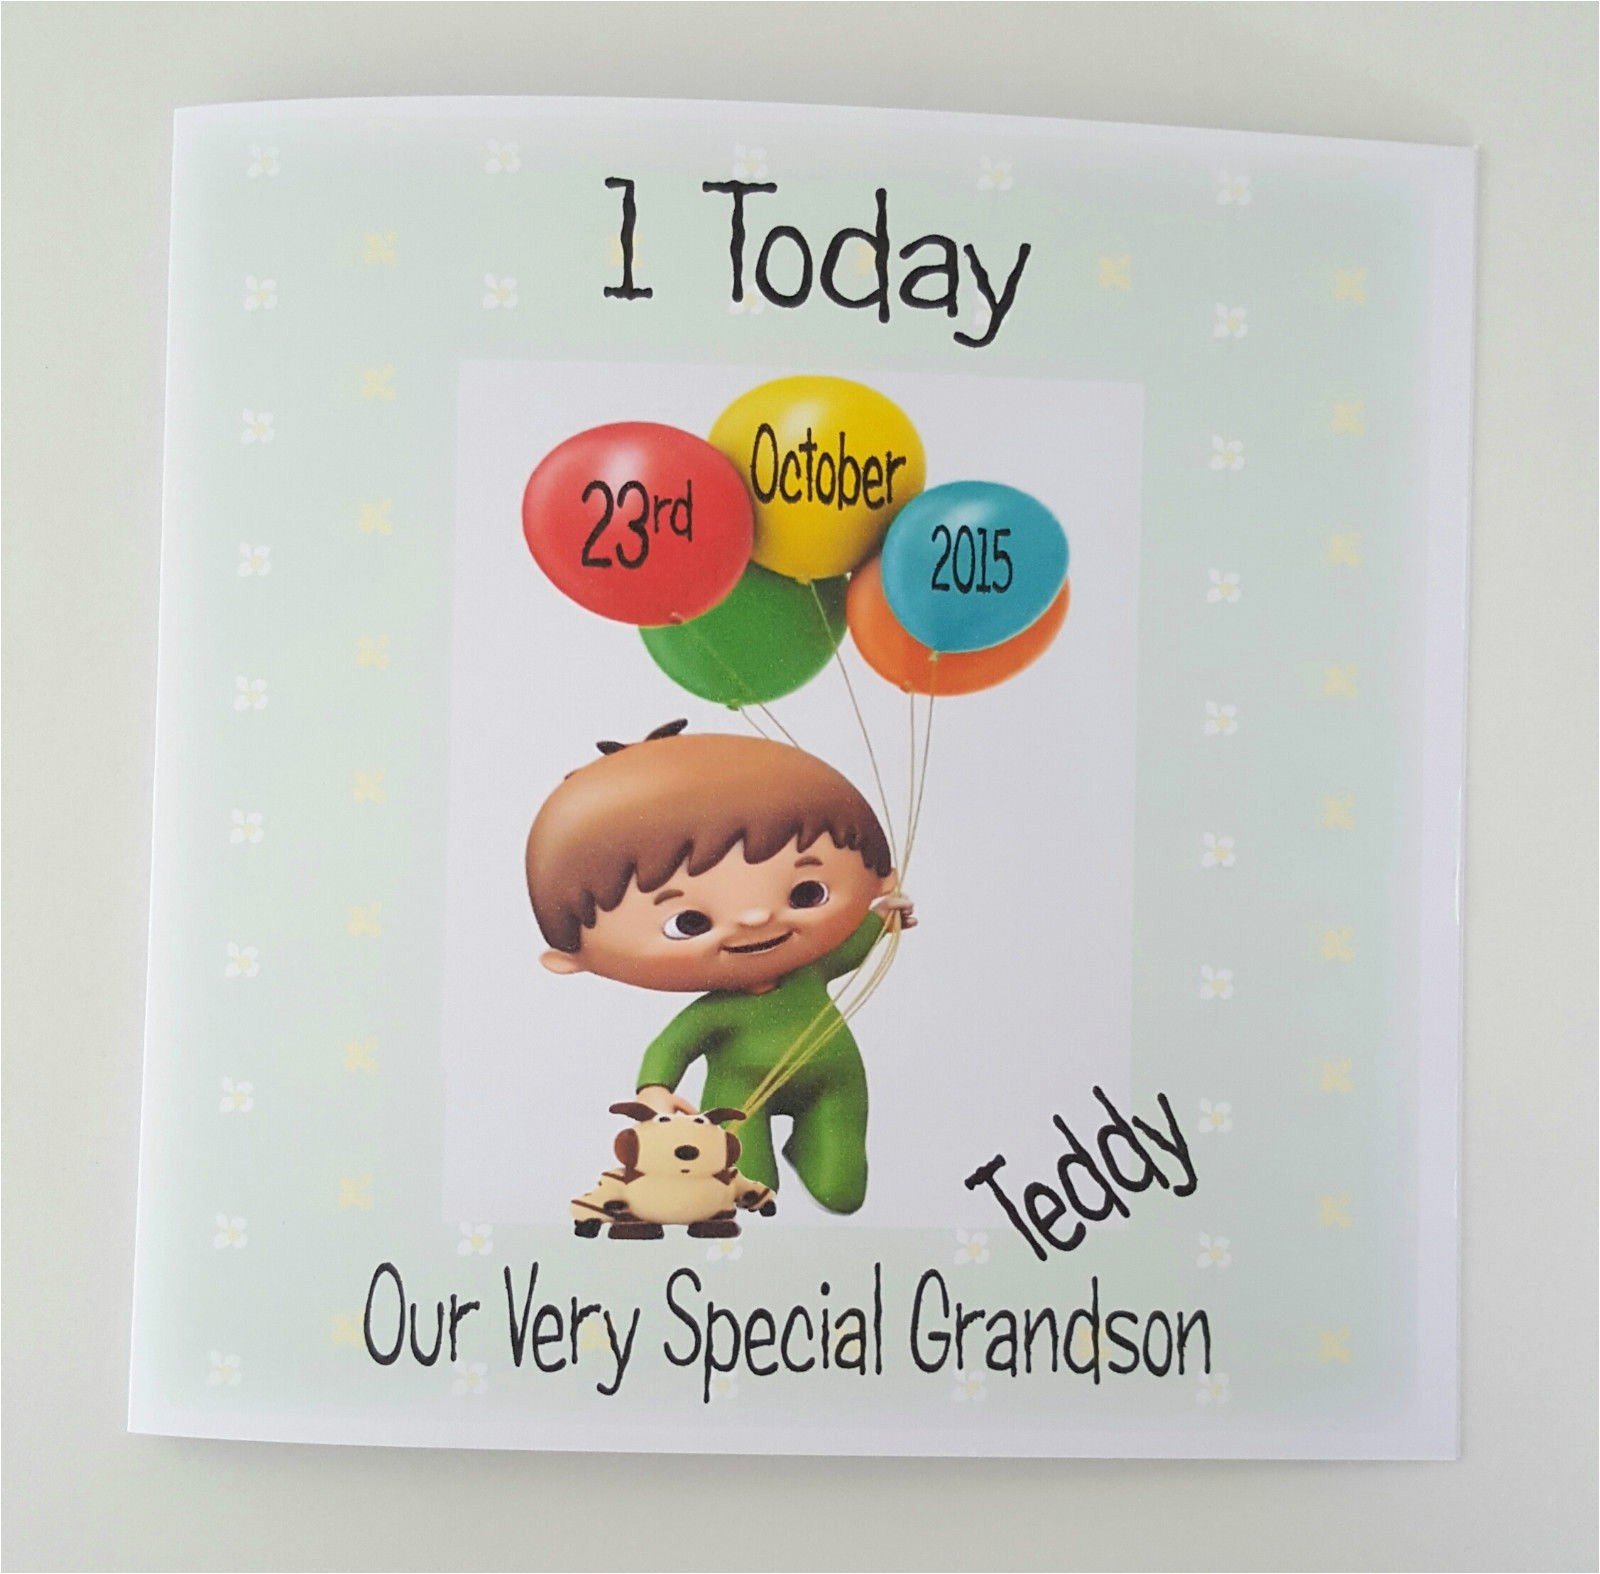 grandson birthday wishes greeting cards unique personalised cuddlies baby tv 1st birthday card grandson son